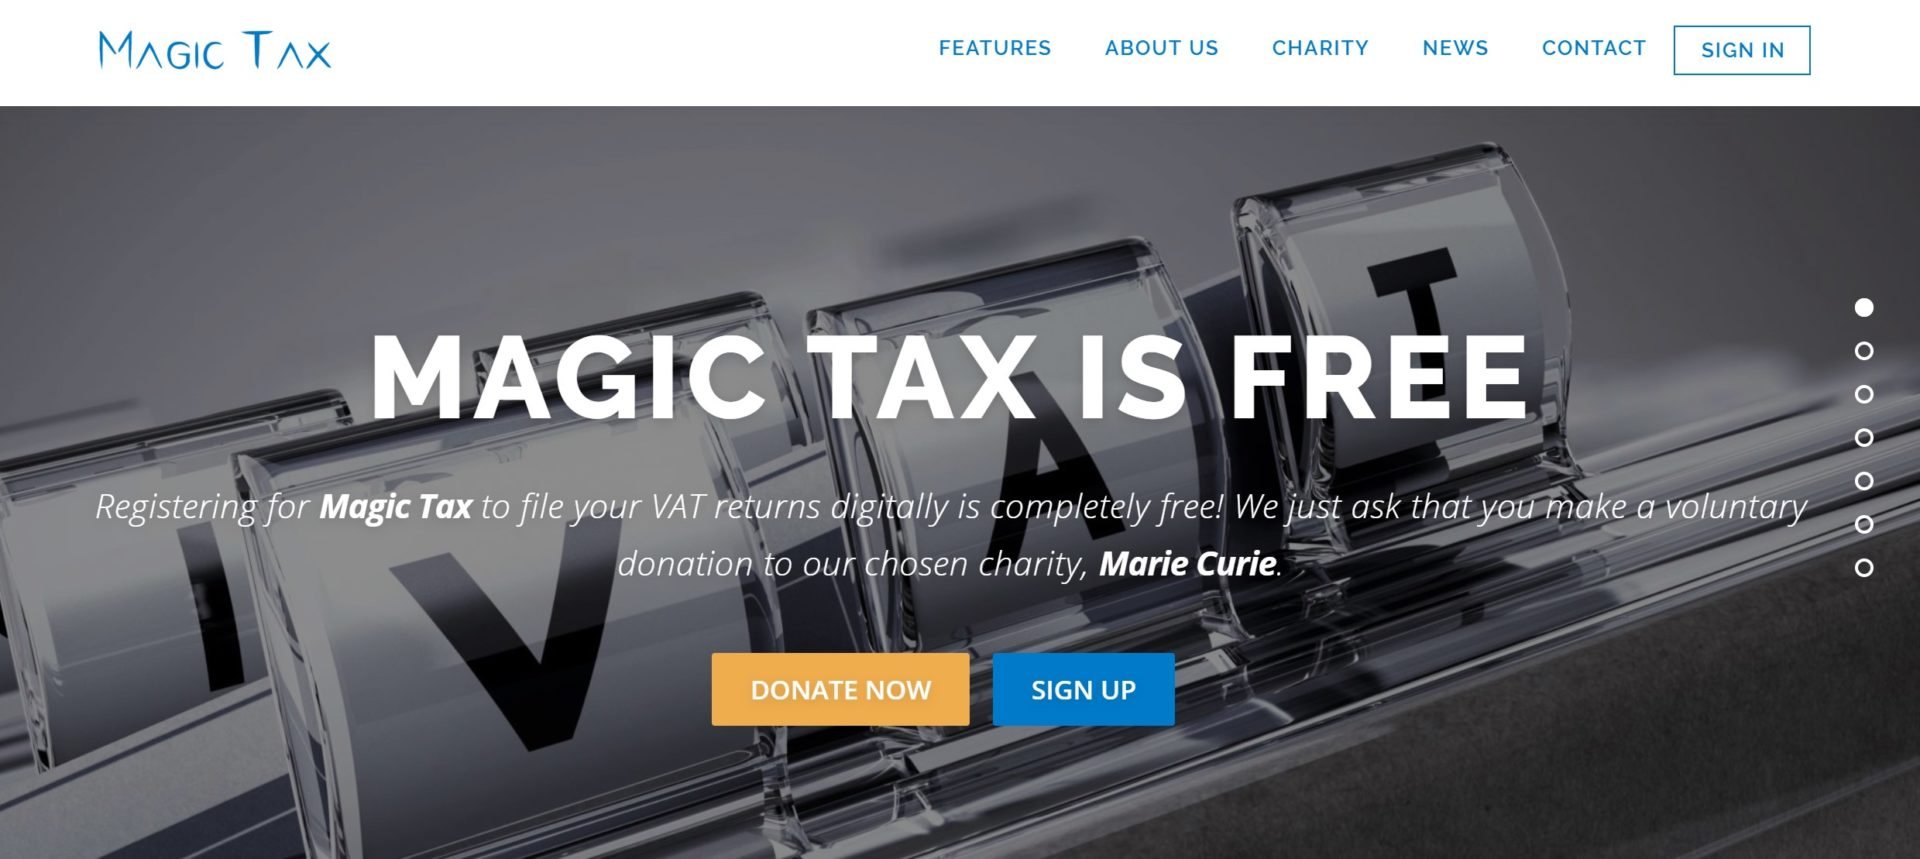 Magic Tax is FREE 2 1920x859 - Magic Tax User Guide Video